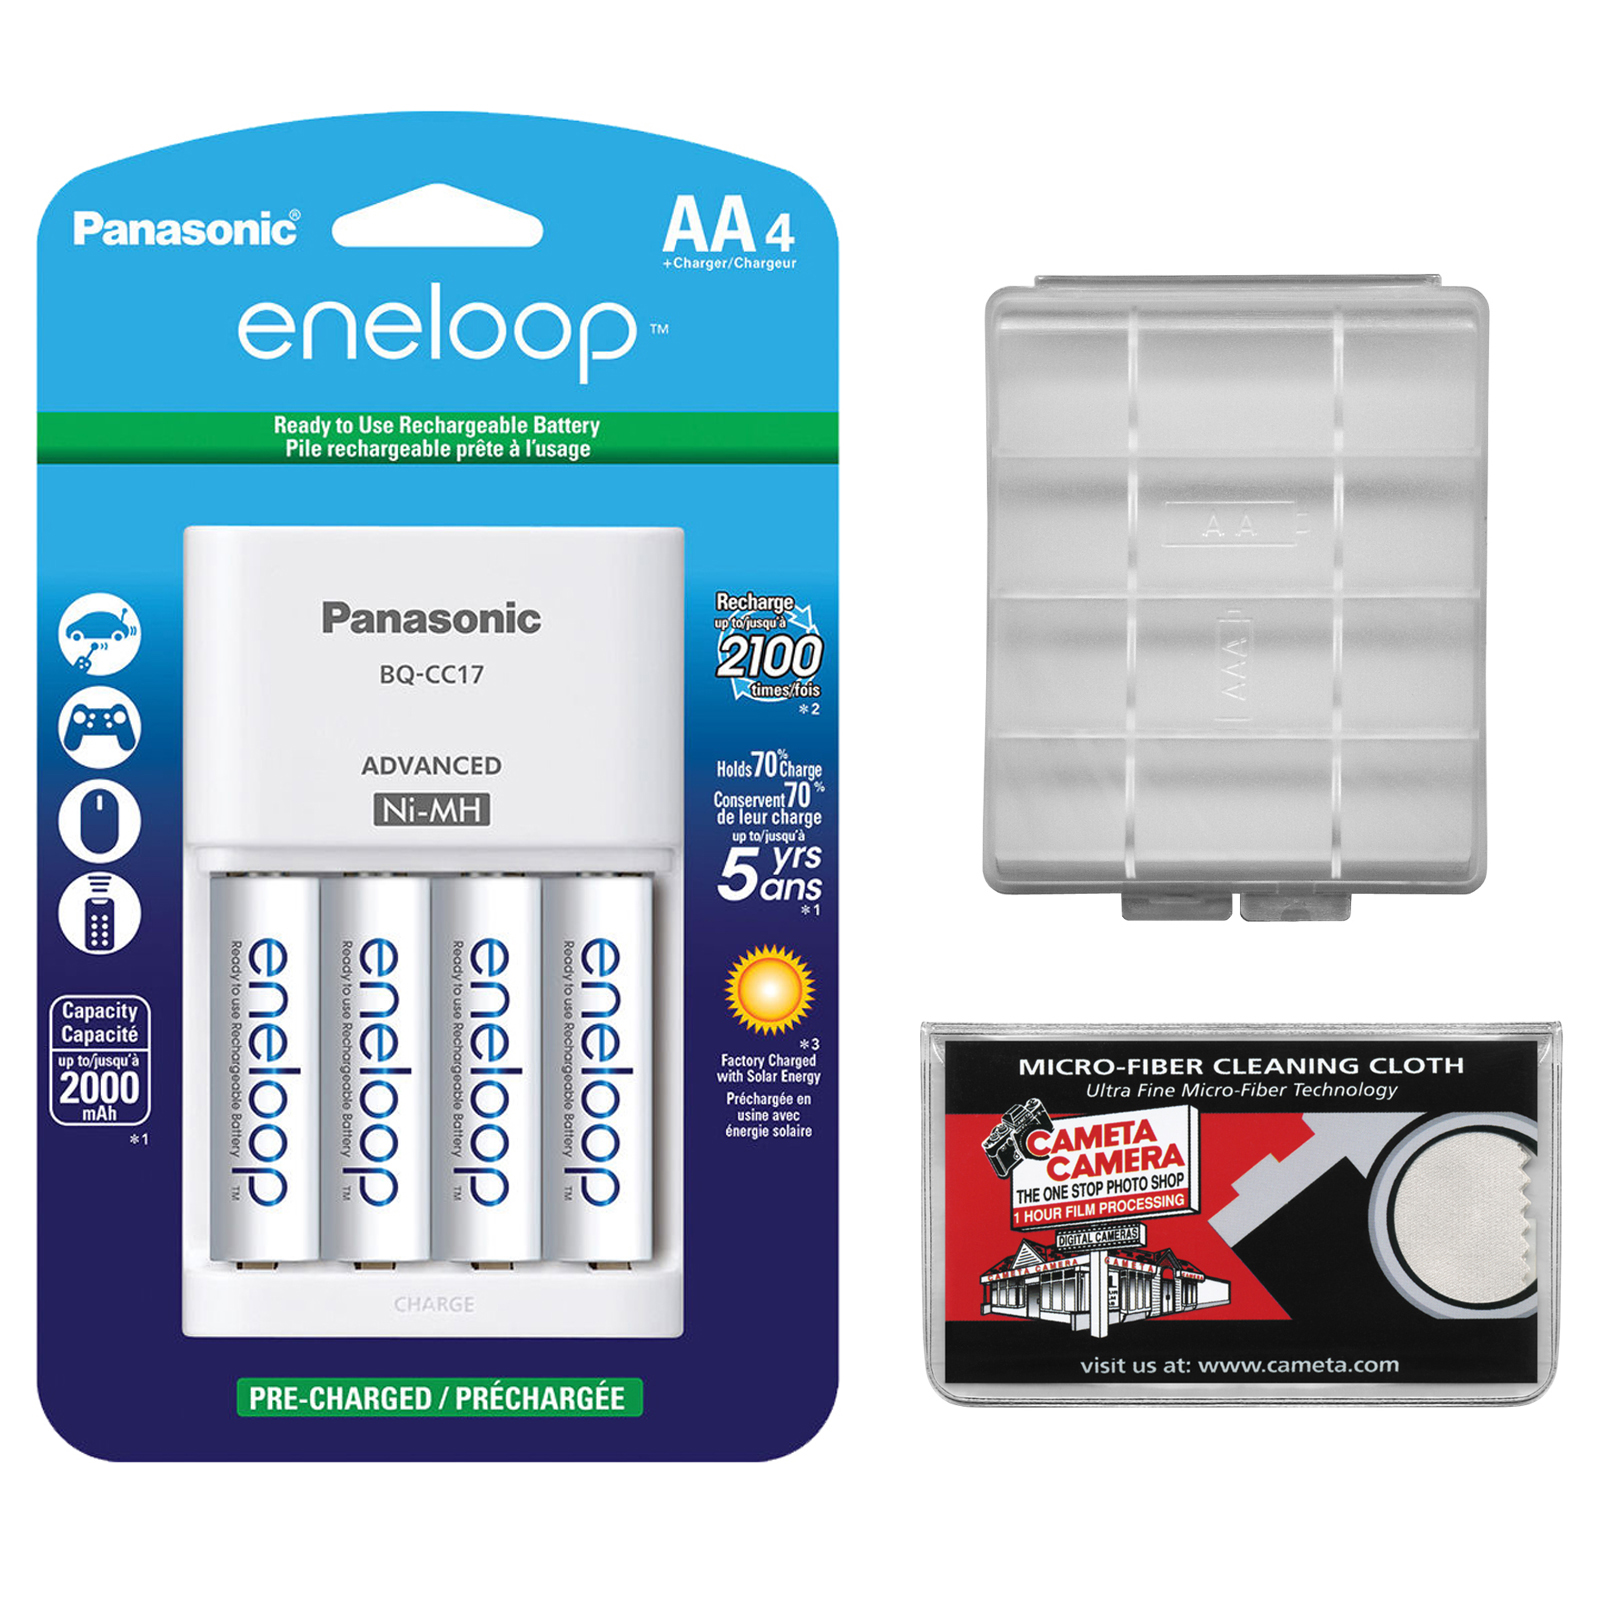 Panasonic eneloop (4) AA 2000mAh Pre-Charged NiMH Rechargeable Batteries & Charger with AA Battery Case + Microfiber Cleaning Cloth